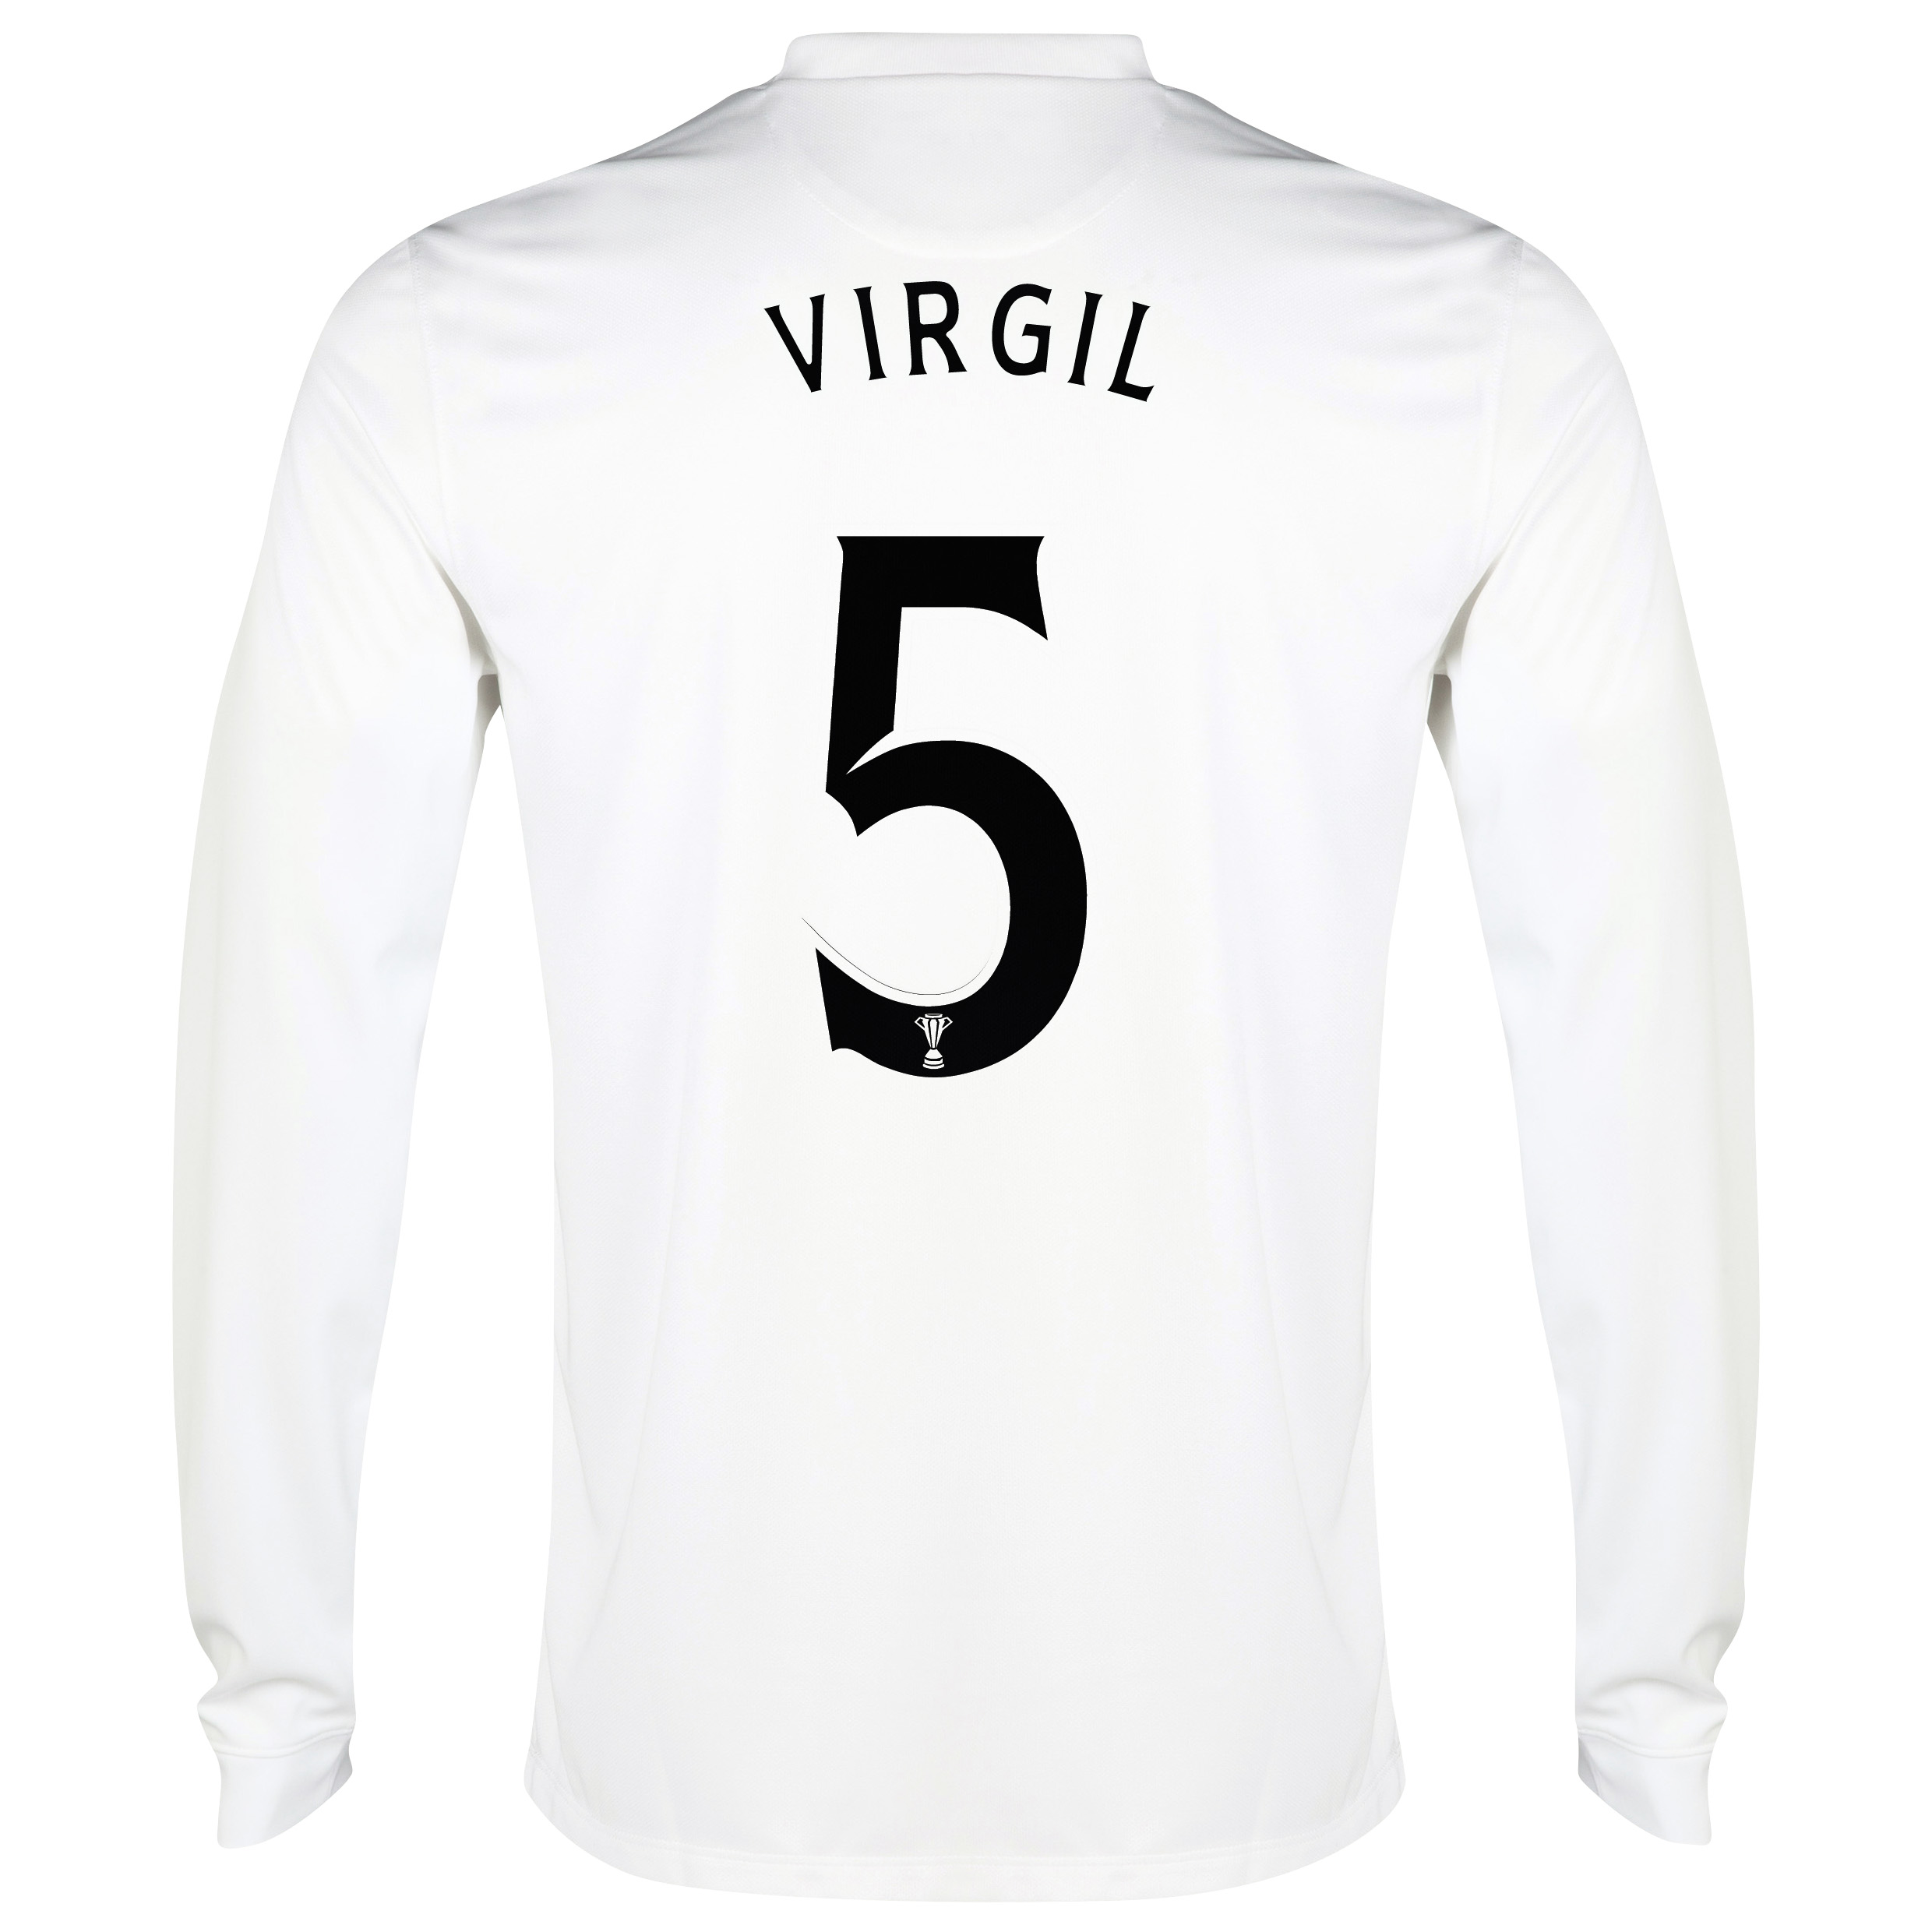 Celtic 3rd Shirt 2014/15 - Long Sleeved - Unsponsored White with Virgil 5 printing